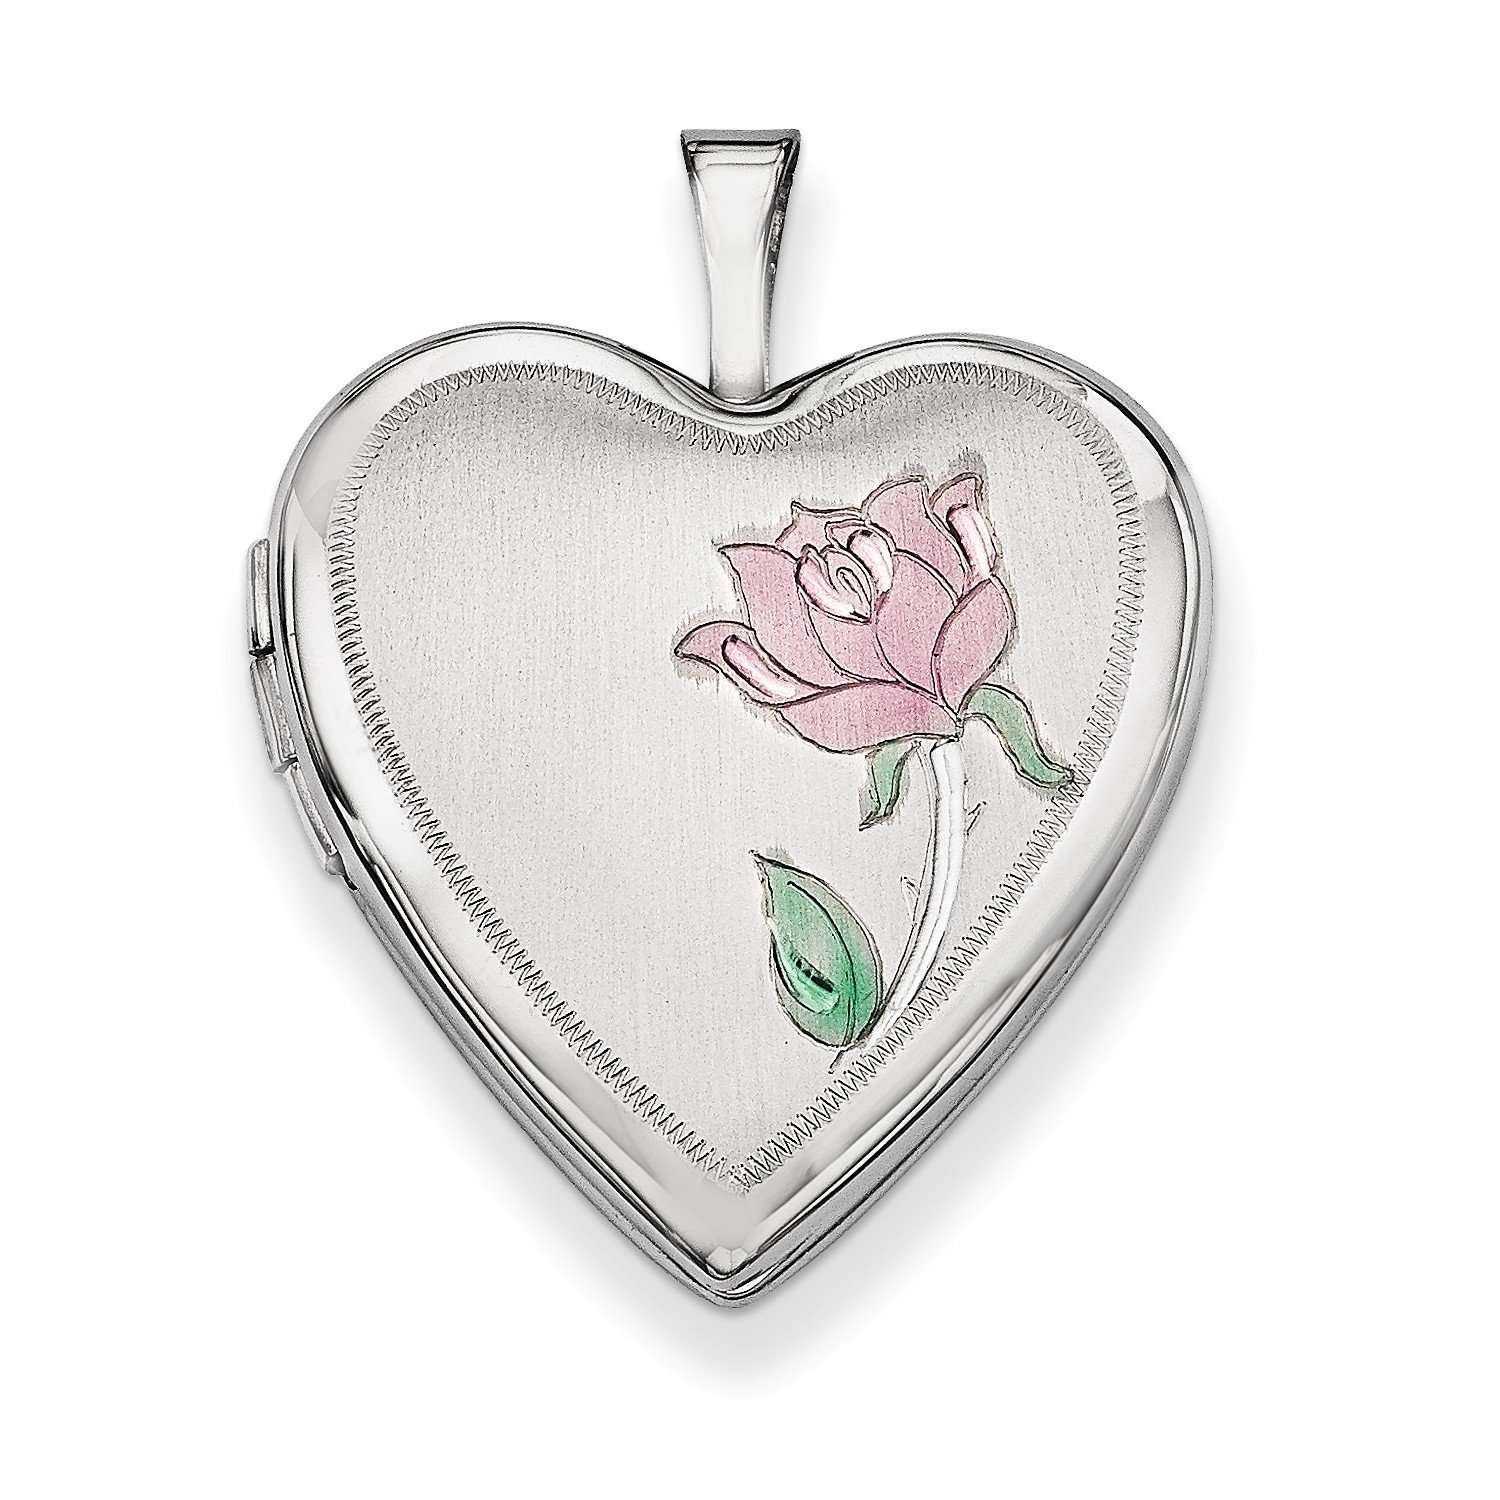 Roy Rose Jewelry 14K Yellow Gold 20mm White Gold Enamel Rose Heart Locket 24x20mm by Roy Rose Jewelry